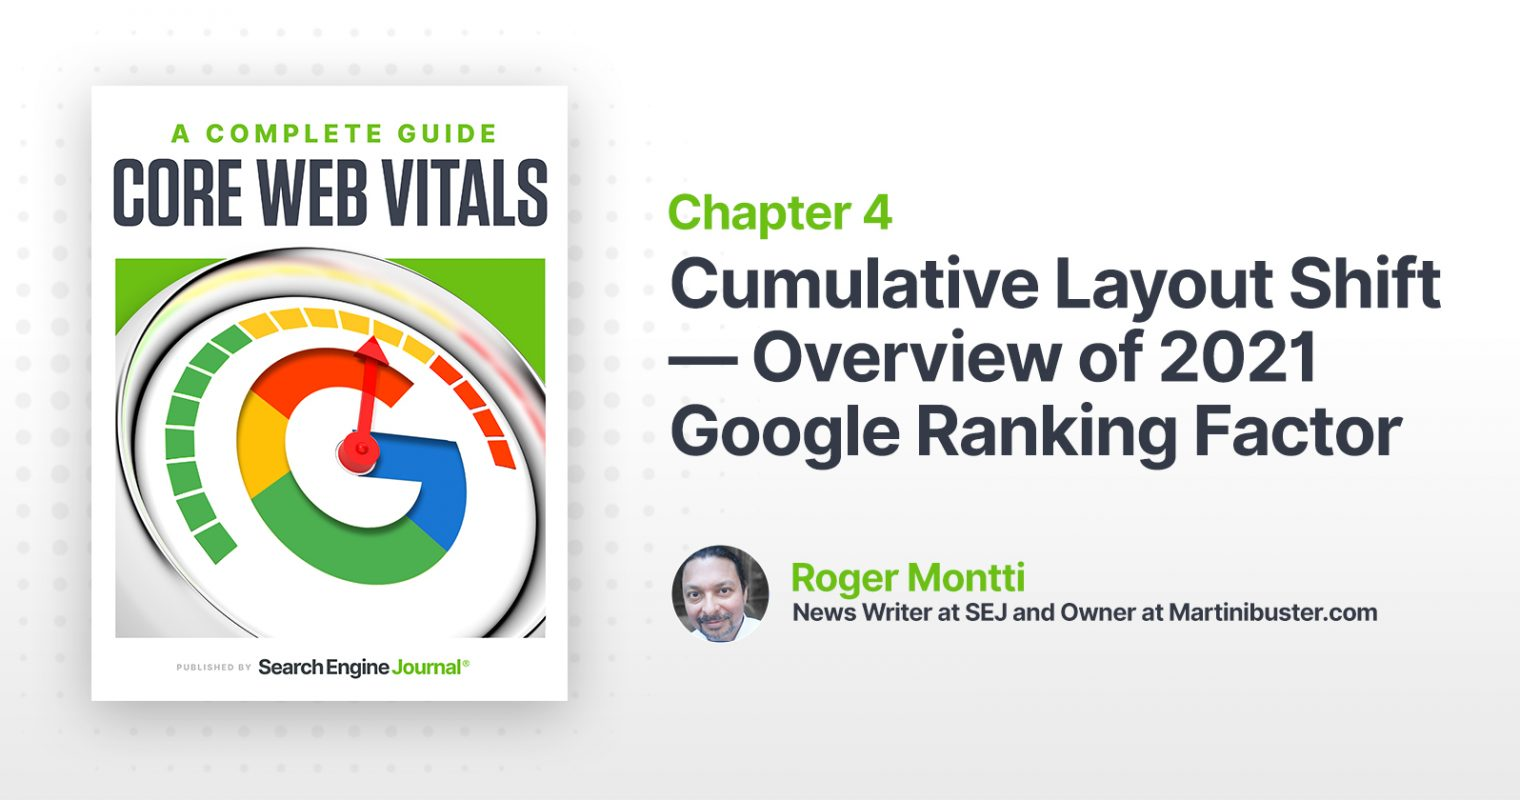 Cumulative Layout Shift – Overview of 2021 Google Ranking Factor